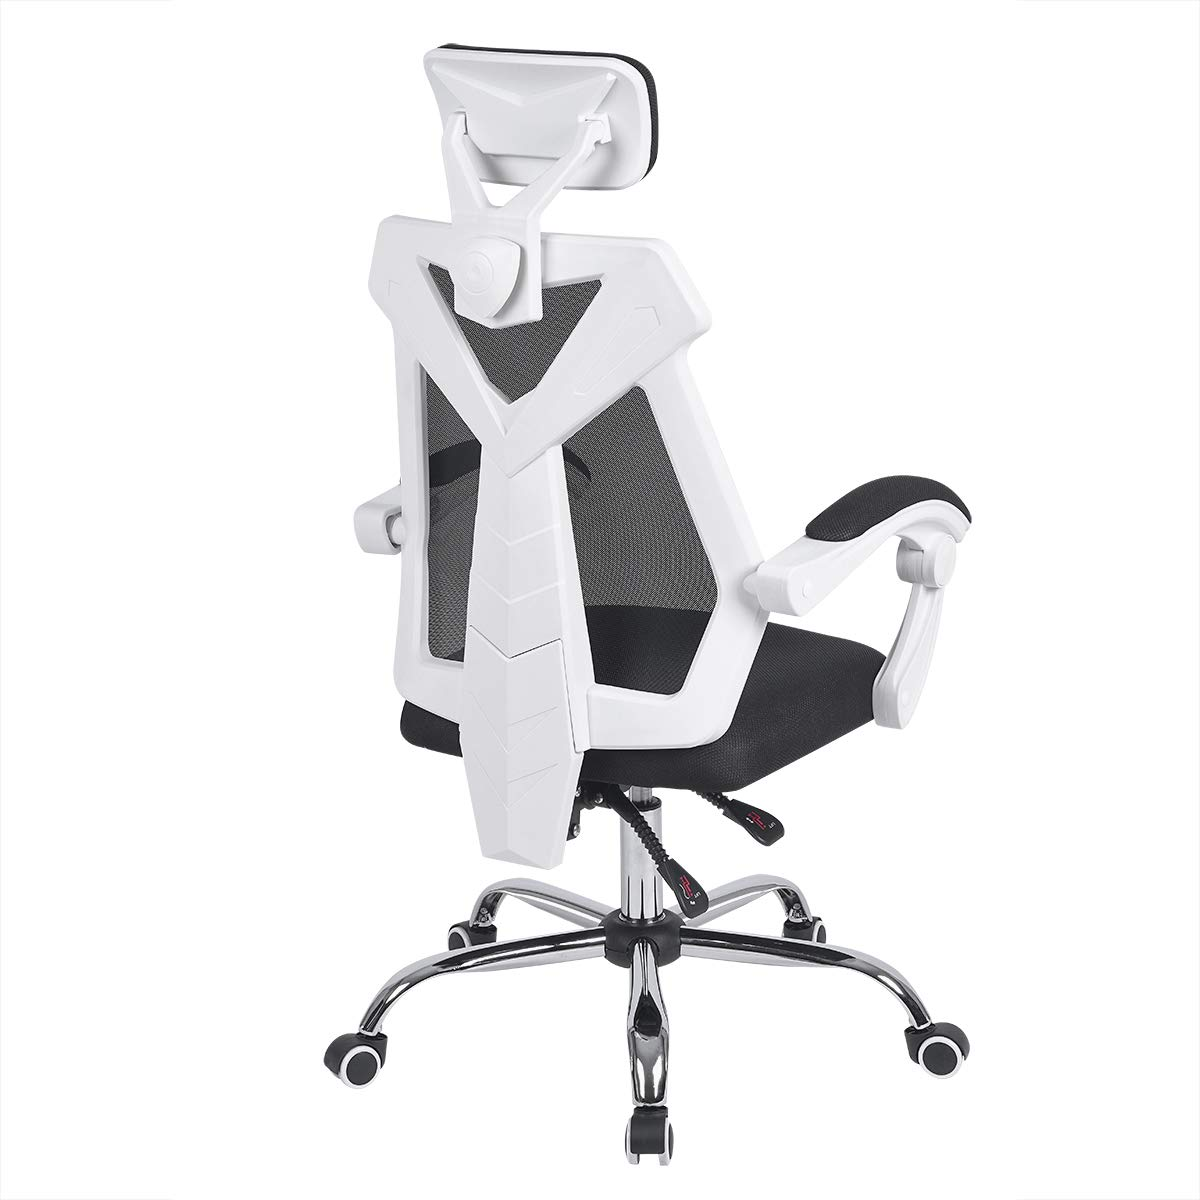 AuAg Gaming Chair Racing Office Chair High Back Computer Desk Chair PU Leather Gaming Chair Ergonomic Adjustable Swivel Gaming Chair-White by AuAg